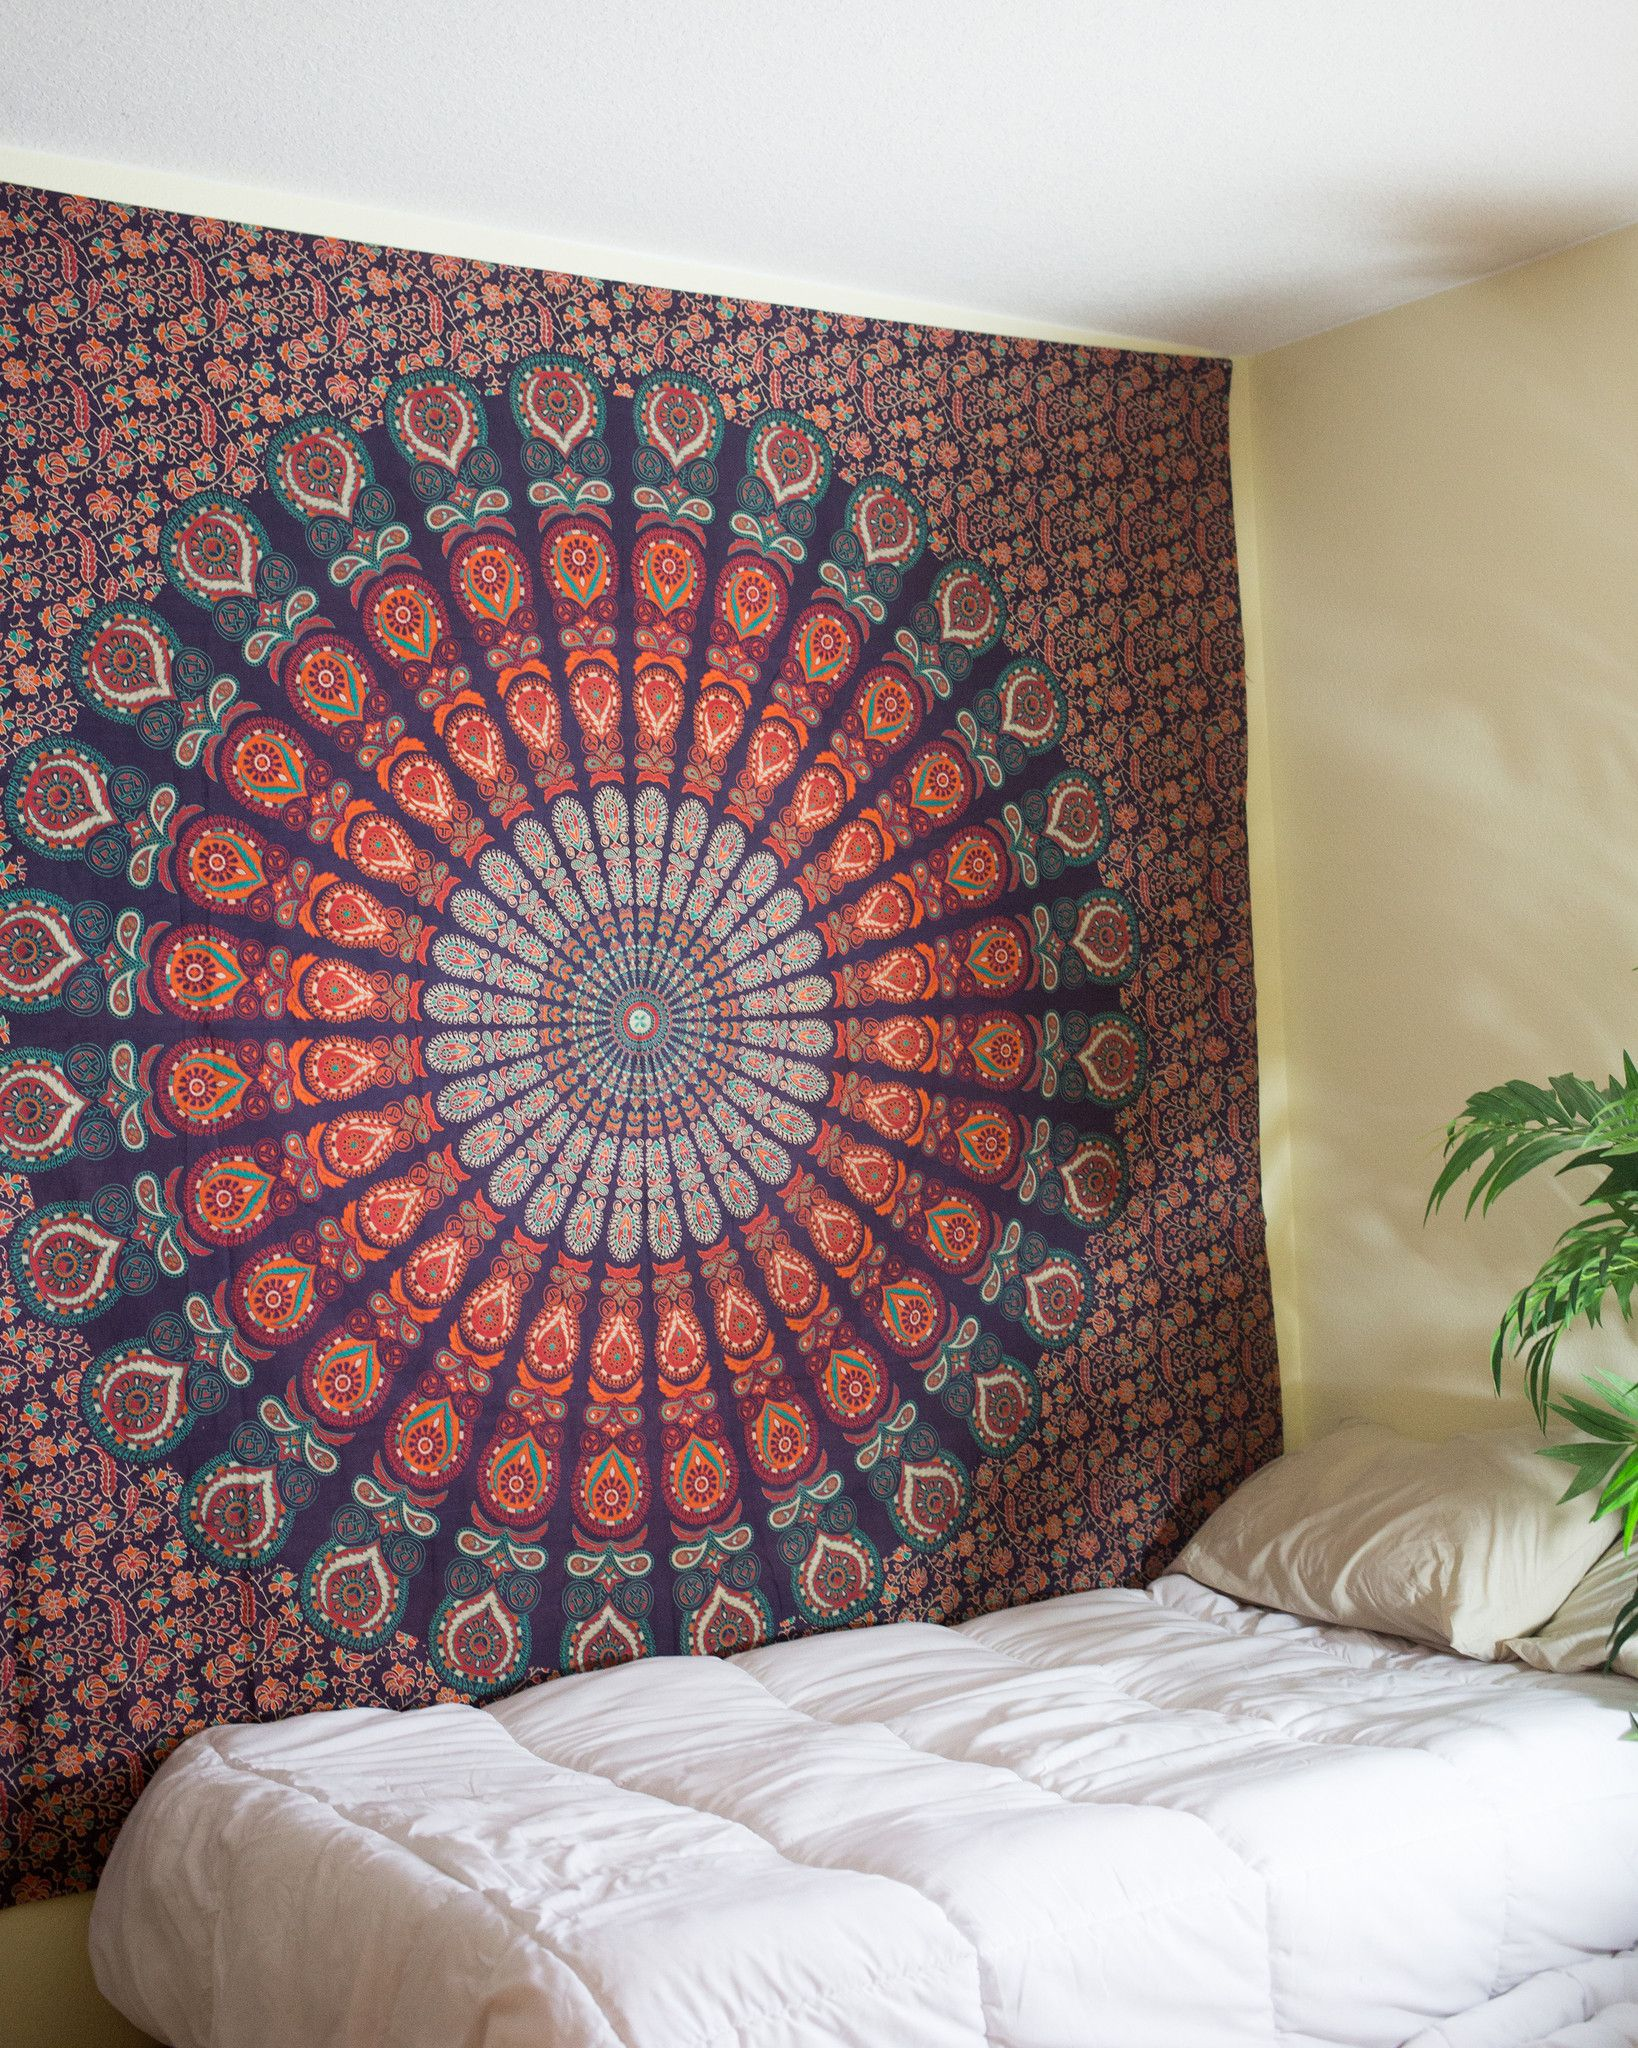 Blue multi elephants sun ombre mandala wall tapestry royalfurnish - Blue Multi Plum And Blow Medallion Wall Tapestry Hippie Bedding Throw